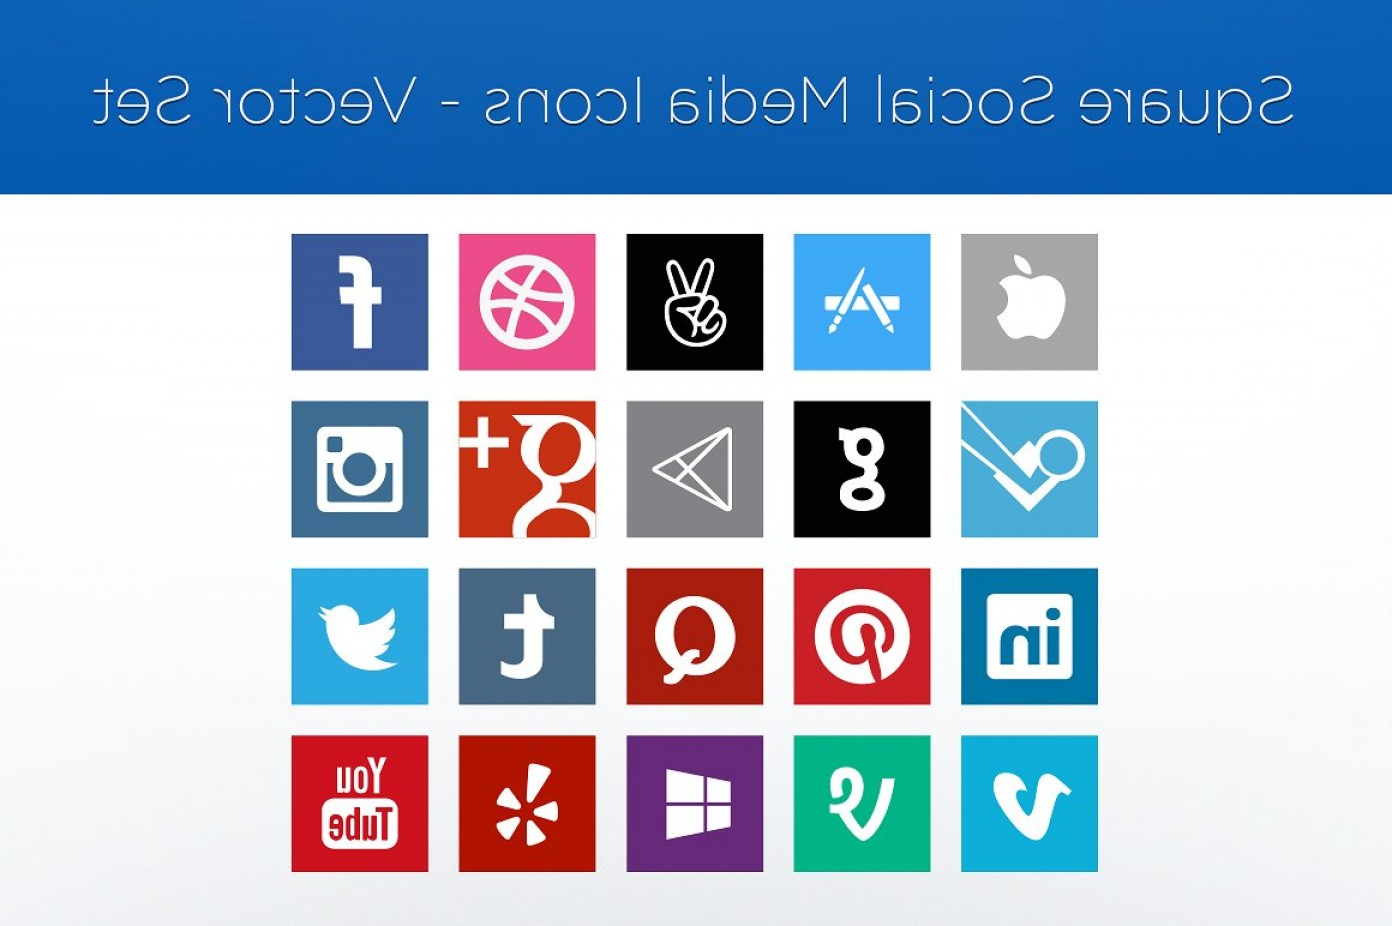 Pencil Icon Vectors Social Media: Square Social Media Icons Vector Set